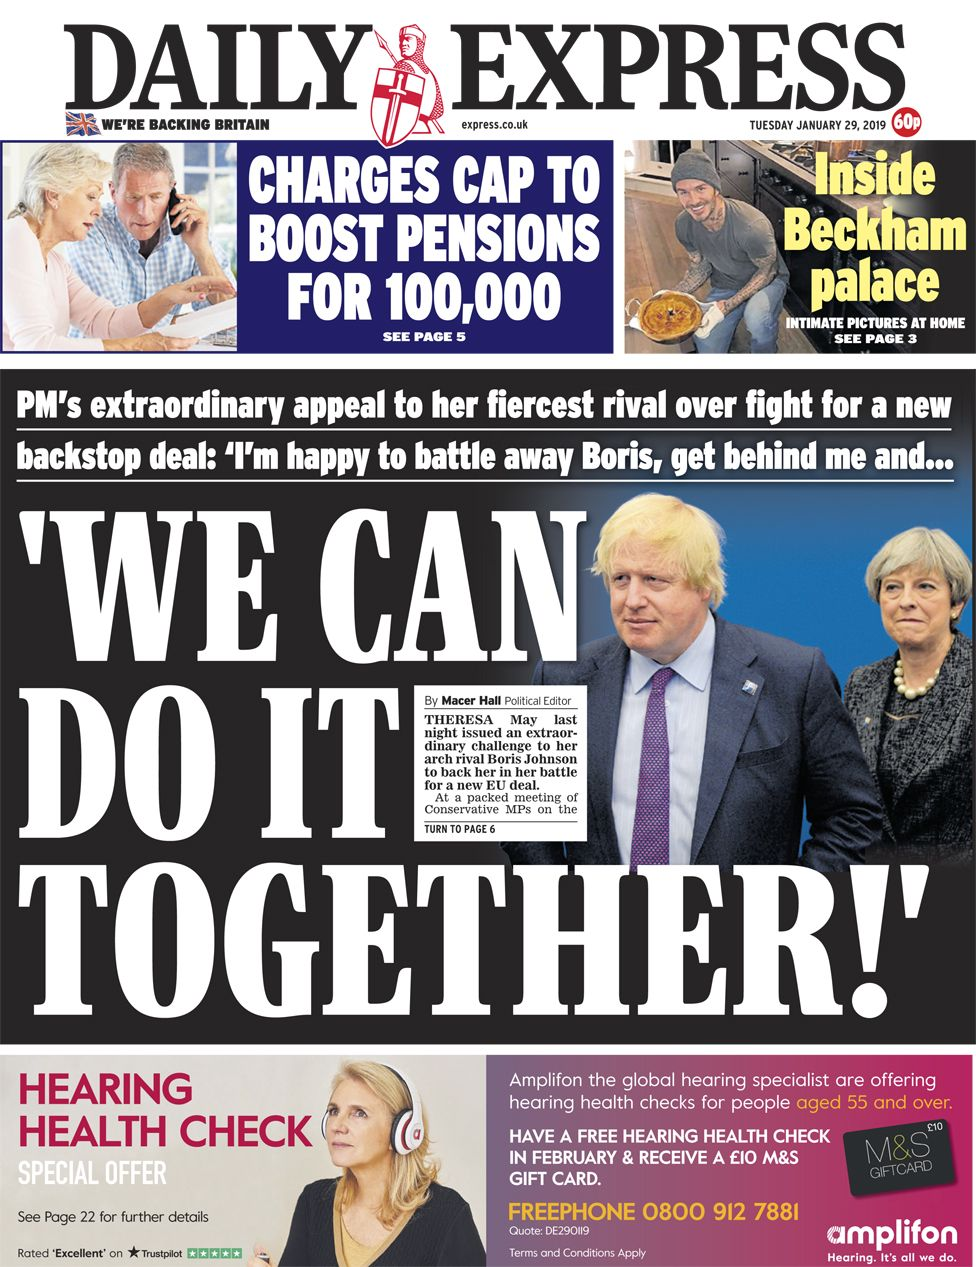 Daily Express front page - 29/01/19